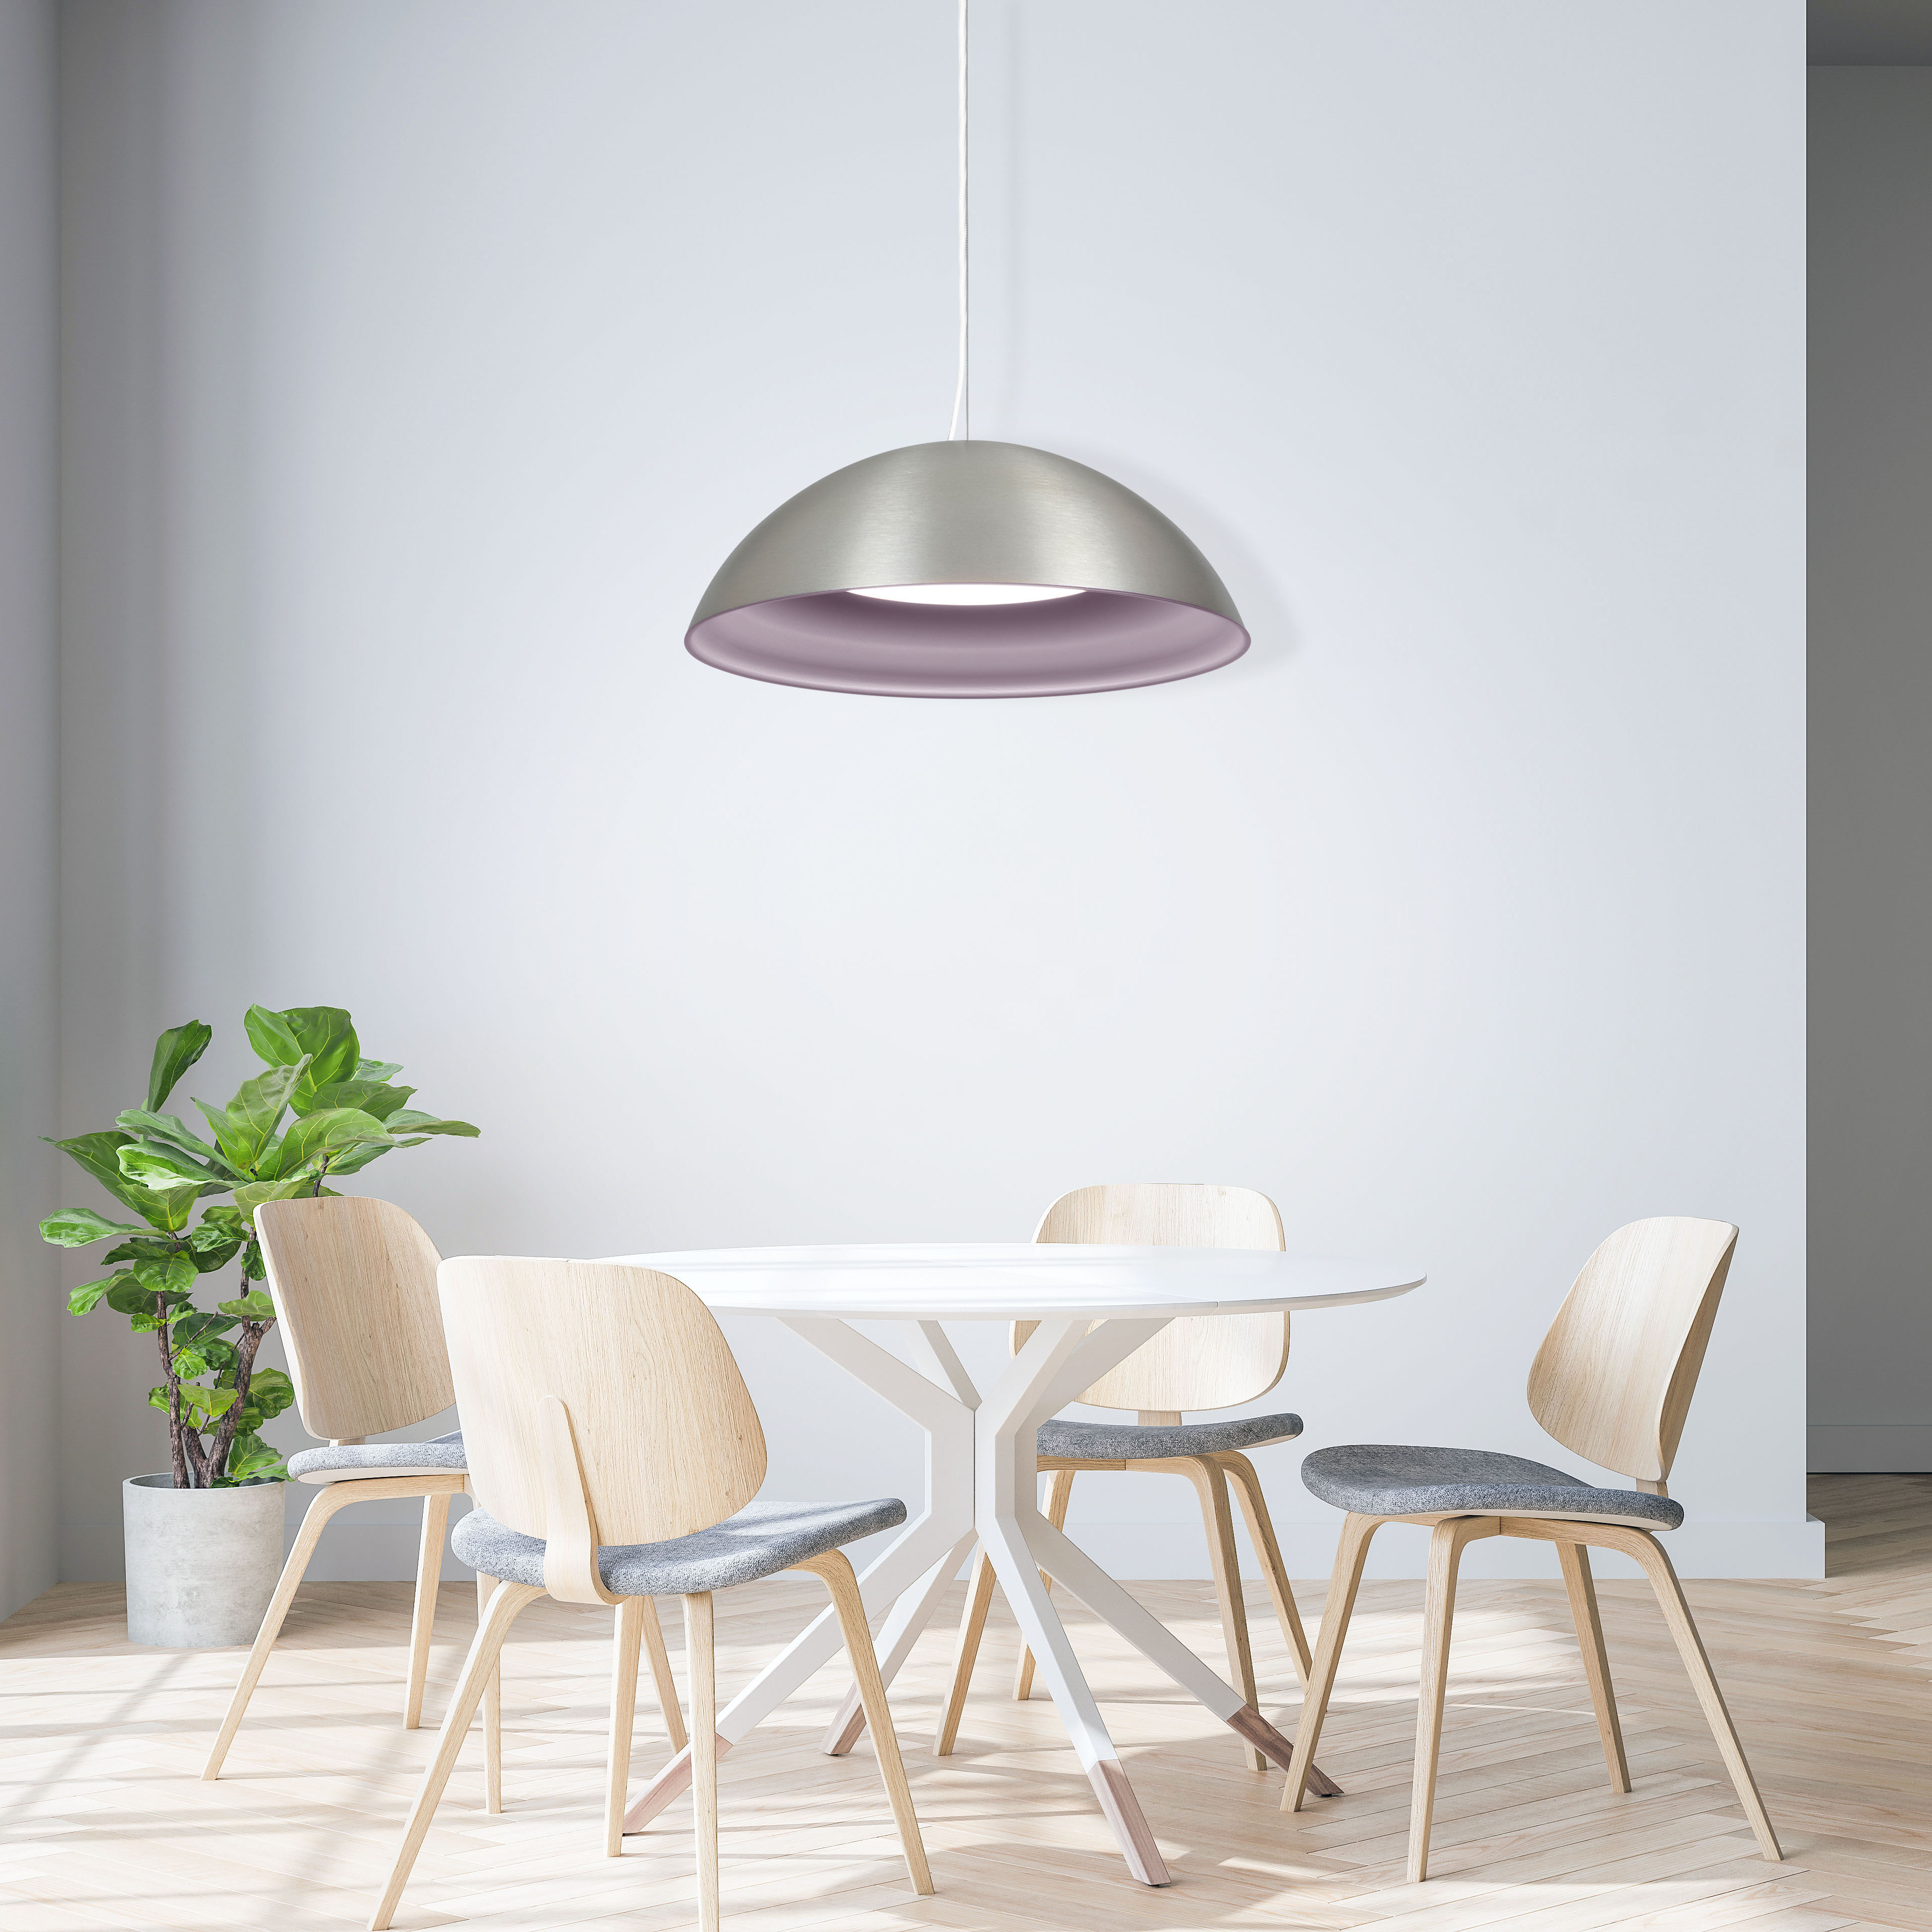 Hellen dome pendant light with black, gold, and bronze finishes